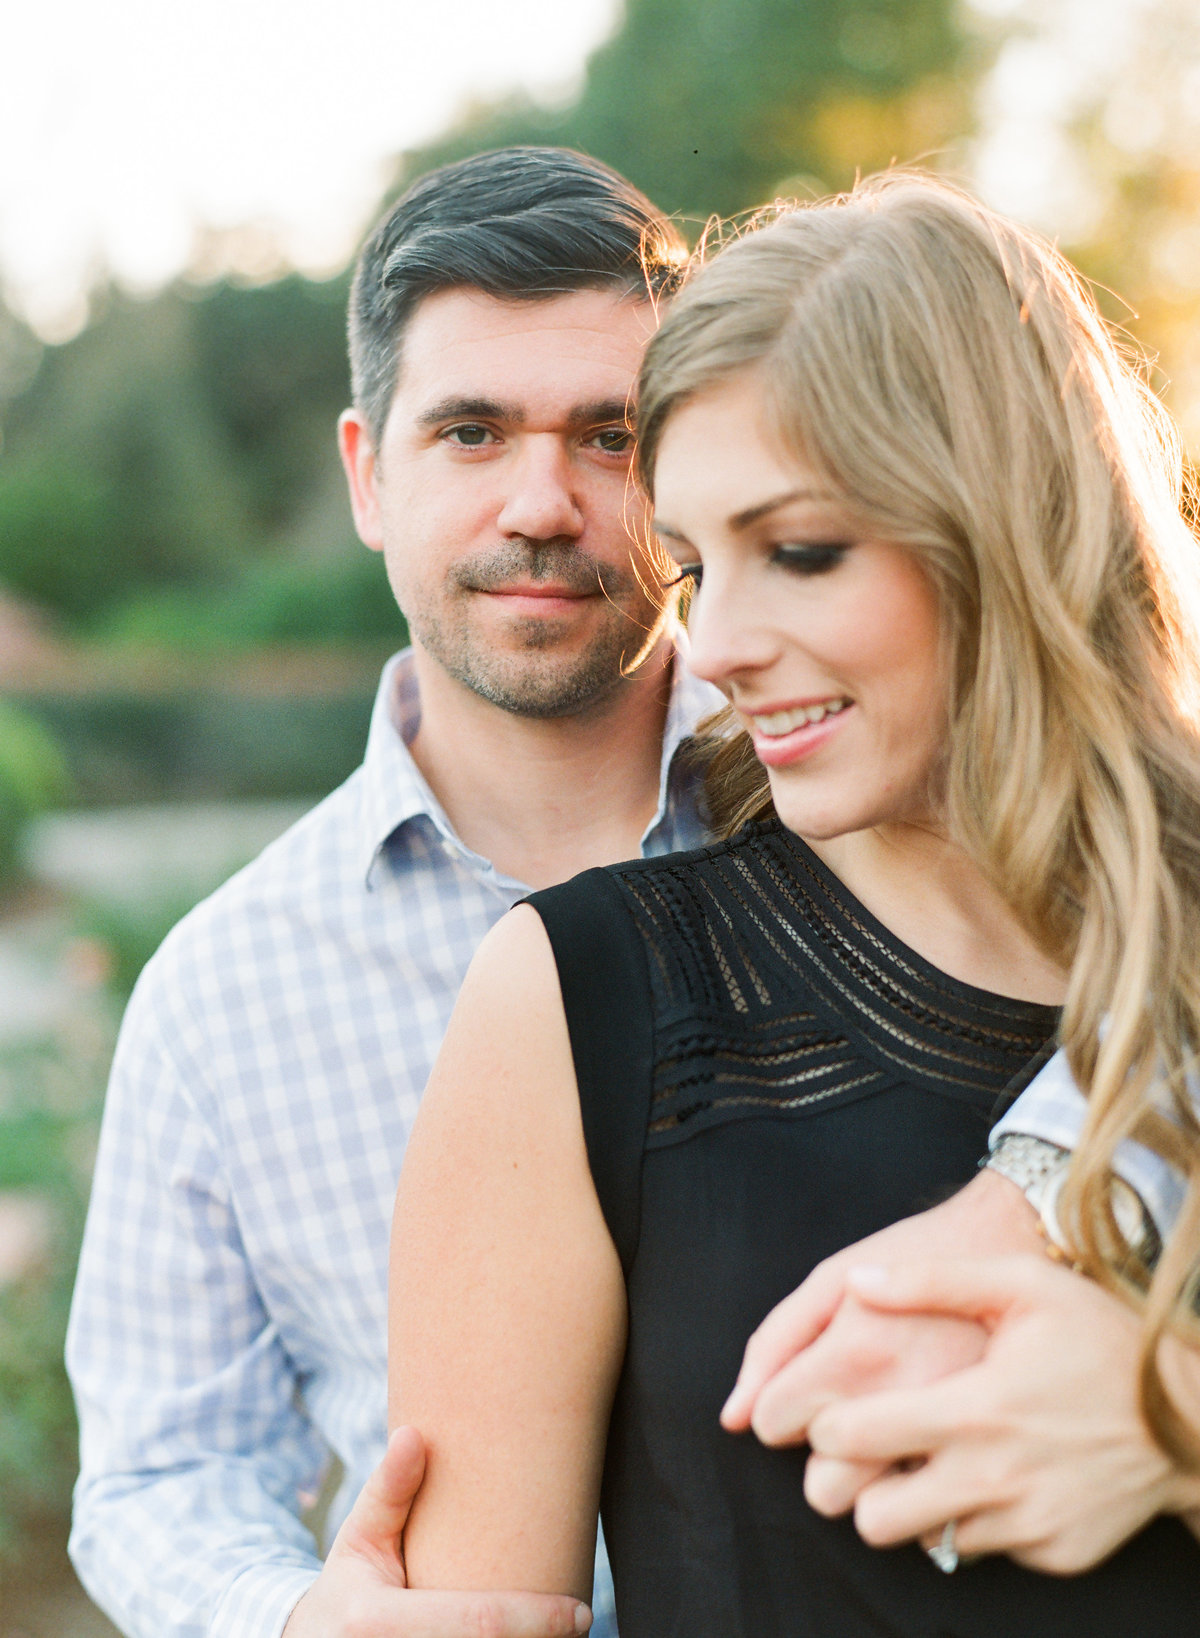 Engagement session at Biltmore Estate in Asheville North Carolina